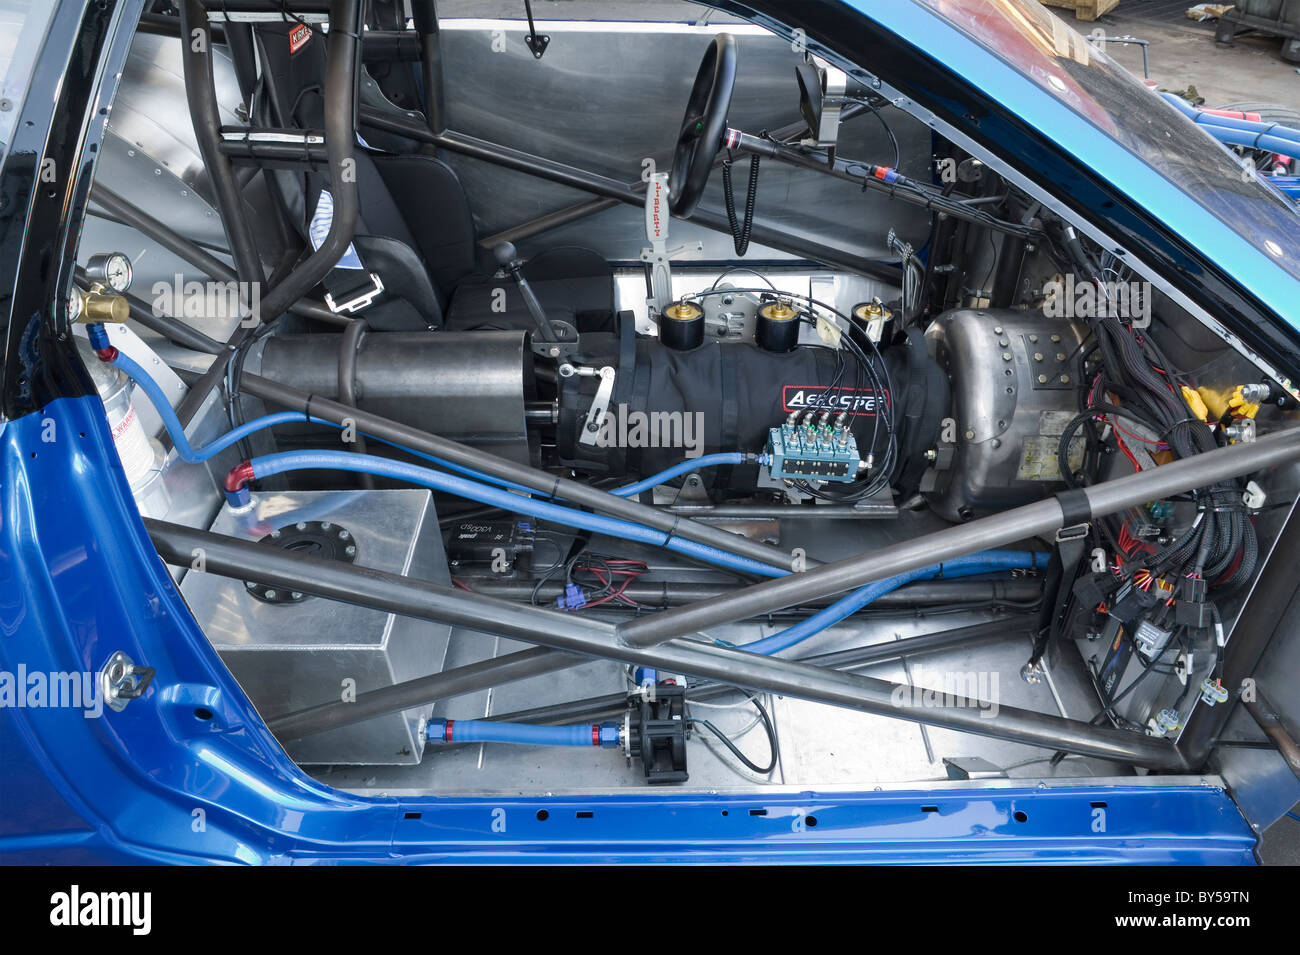 cockpit in a drag racing car showing components and parts such as gearbox,  safety cage, gear shifter, electrical parts etc